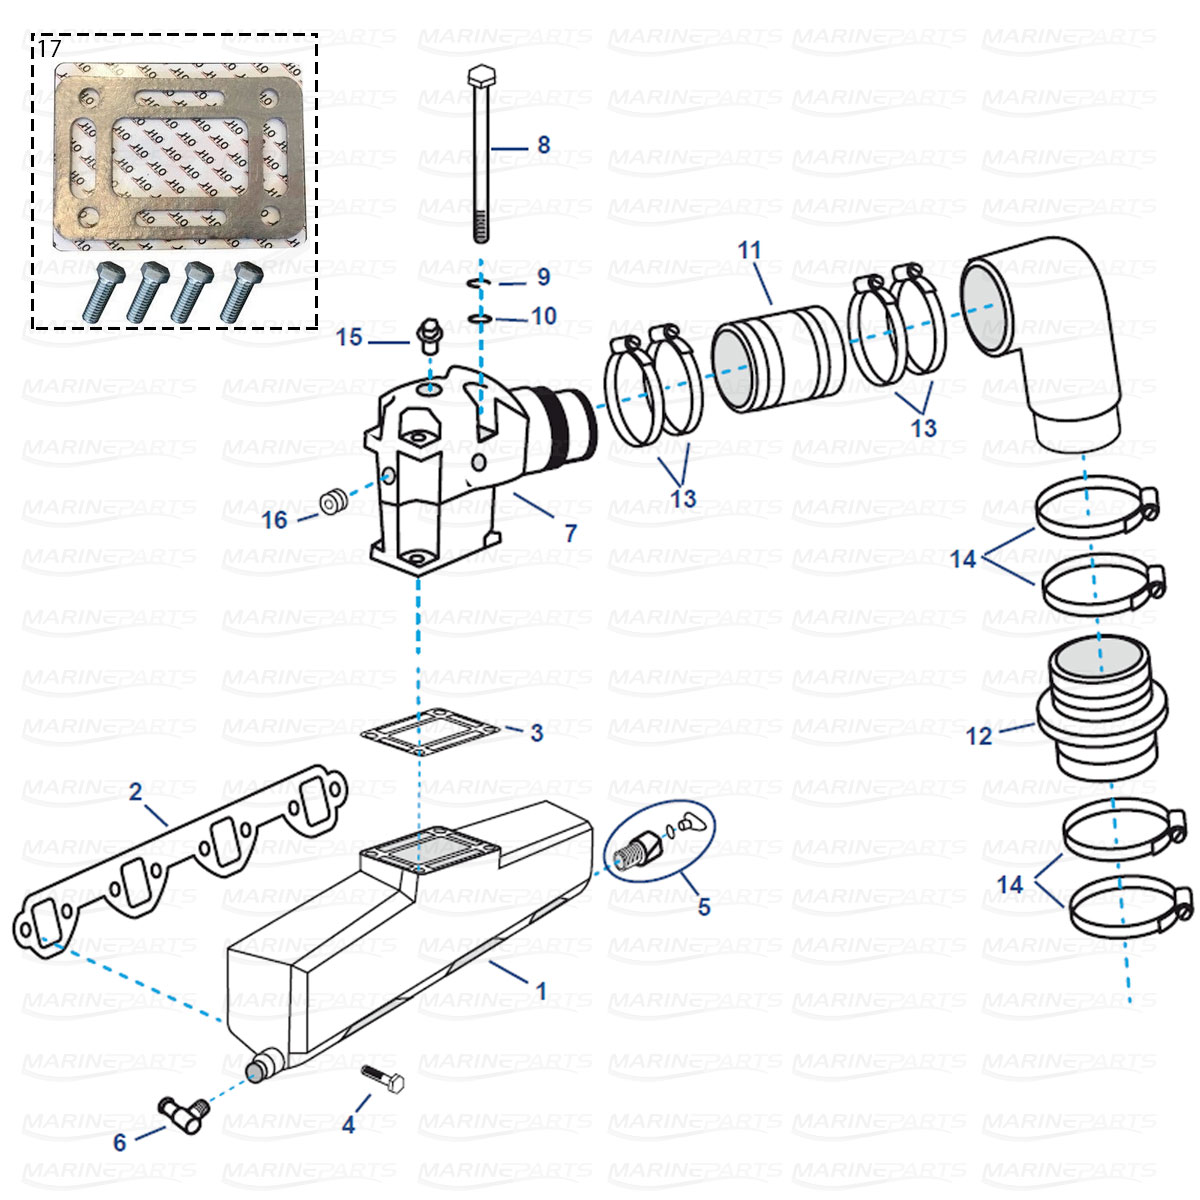 Exhaust parts for OMC V8 [GM V8 454 bigblock] years 1992+